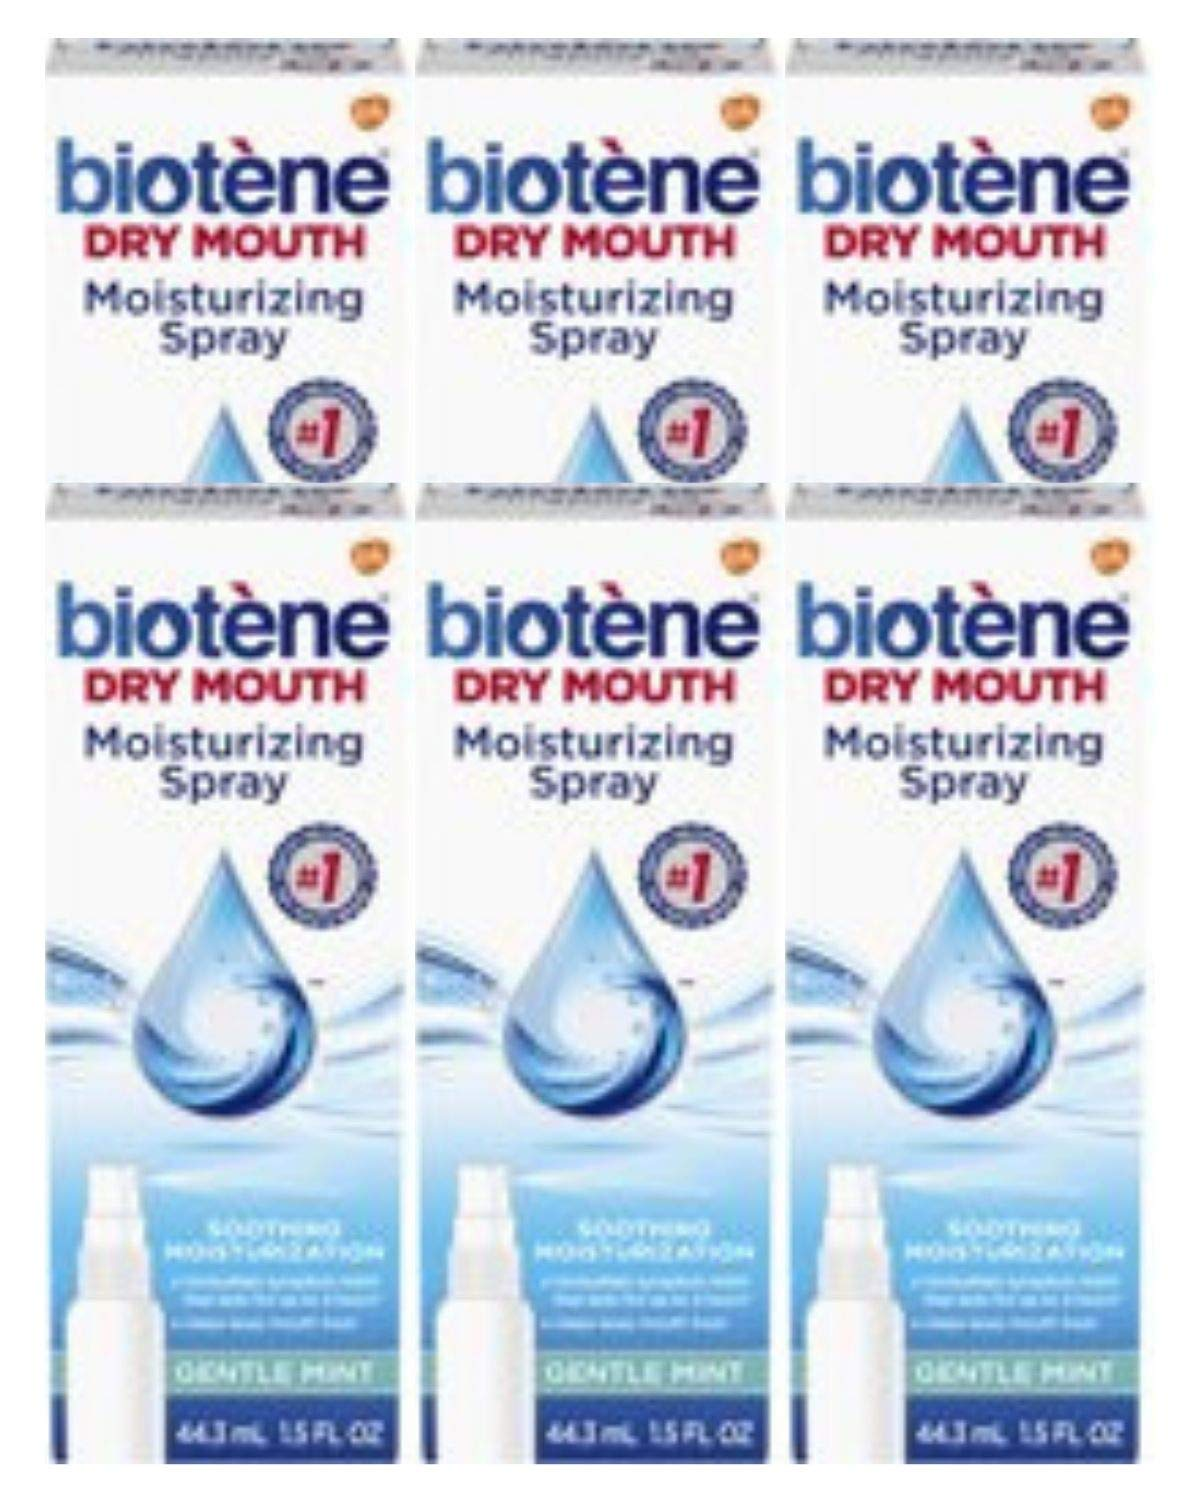 Biotene Gentle Mint Moisturizing Mouth Spray, Sugar-Free, for Dry Mouth and Fresh Breath, 1.5 Ounce (Pack of 6)